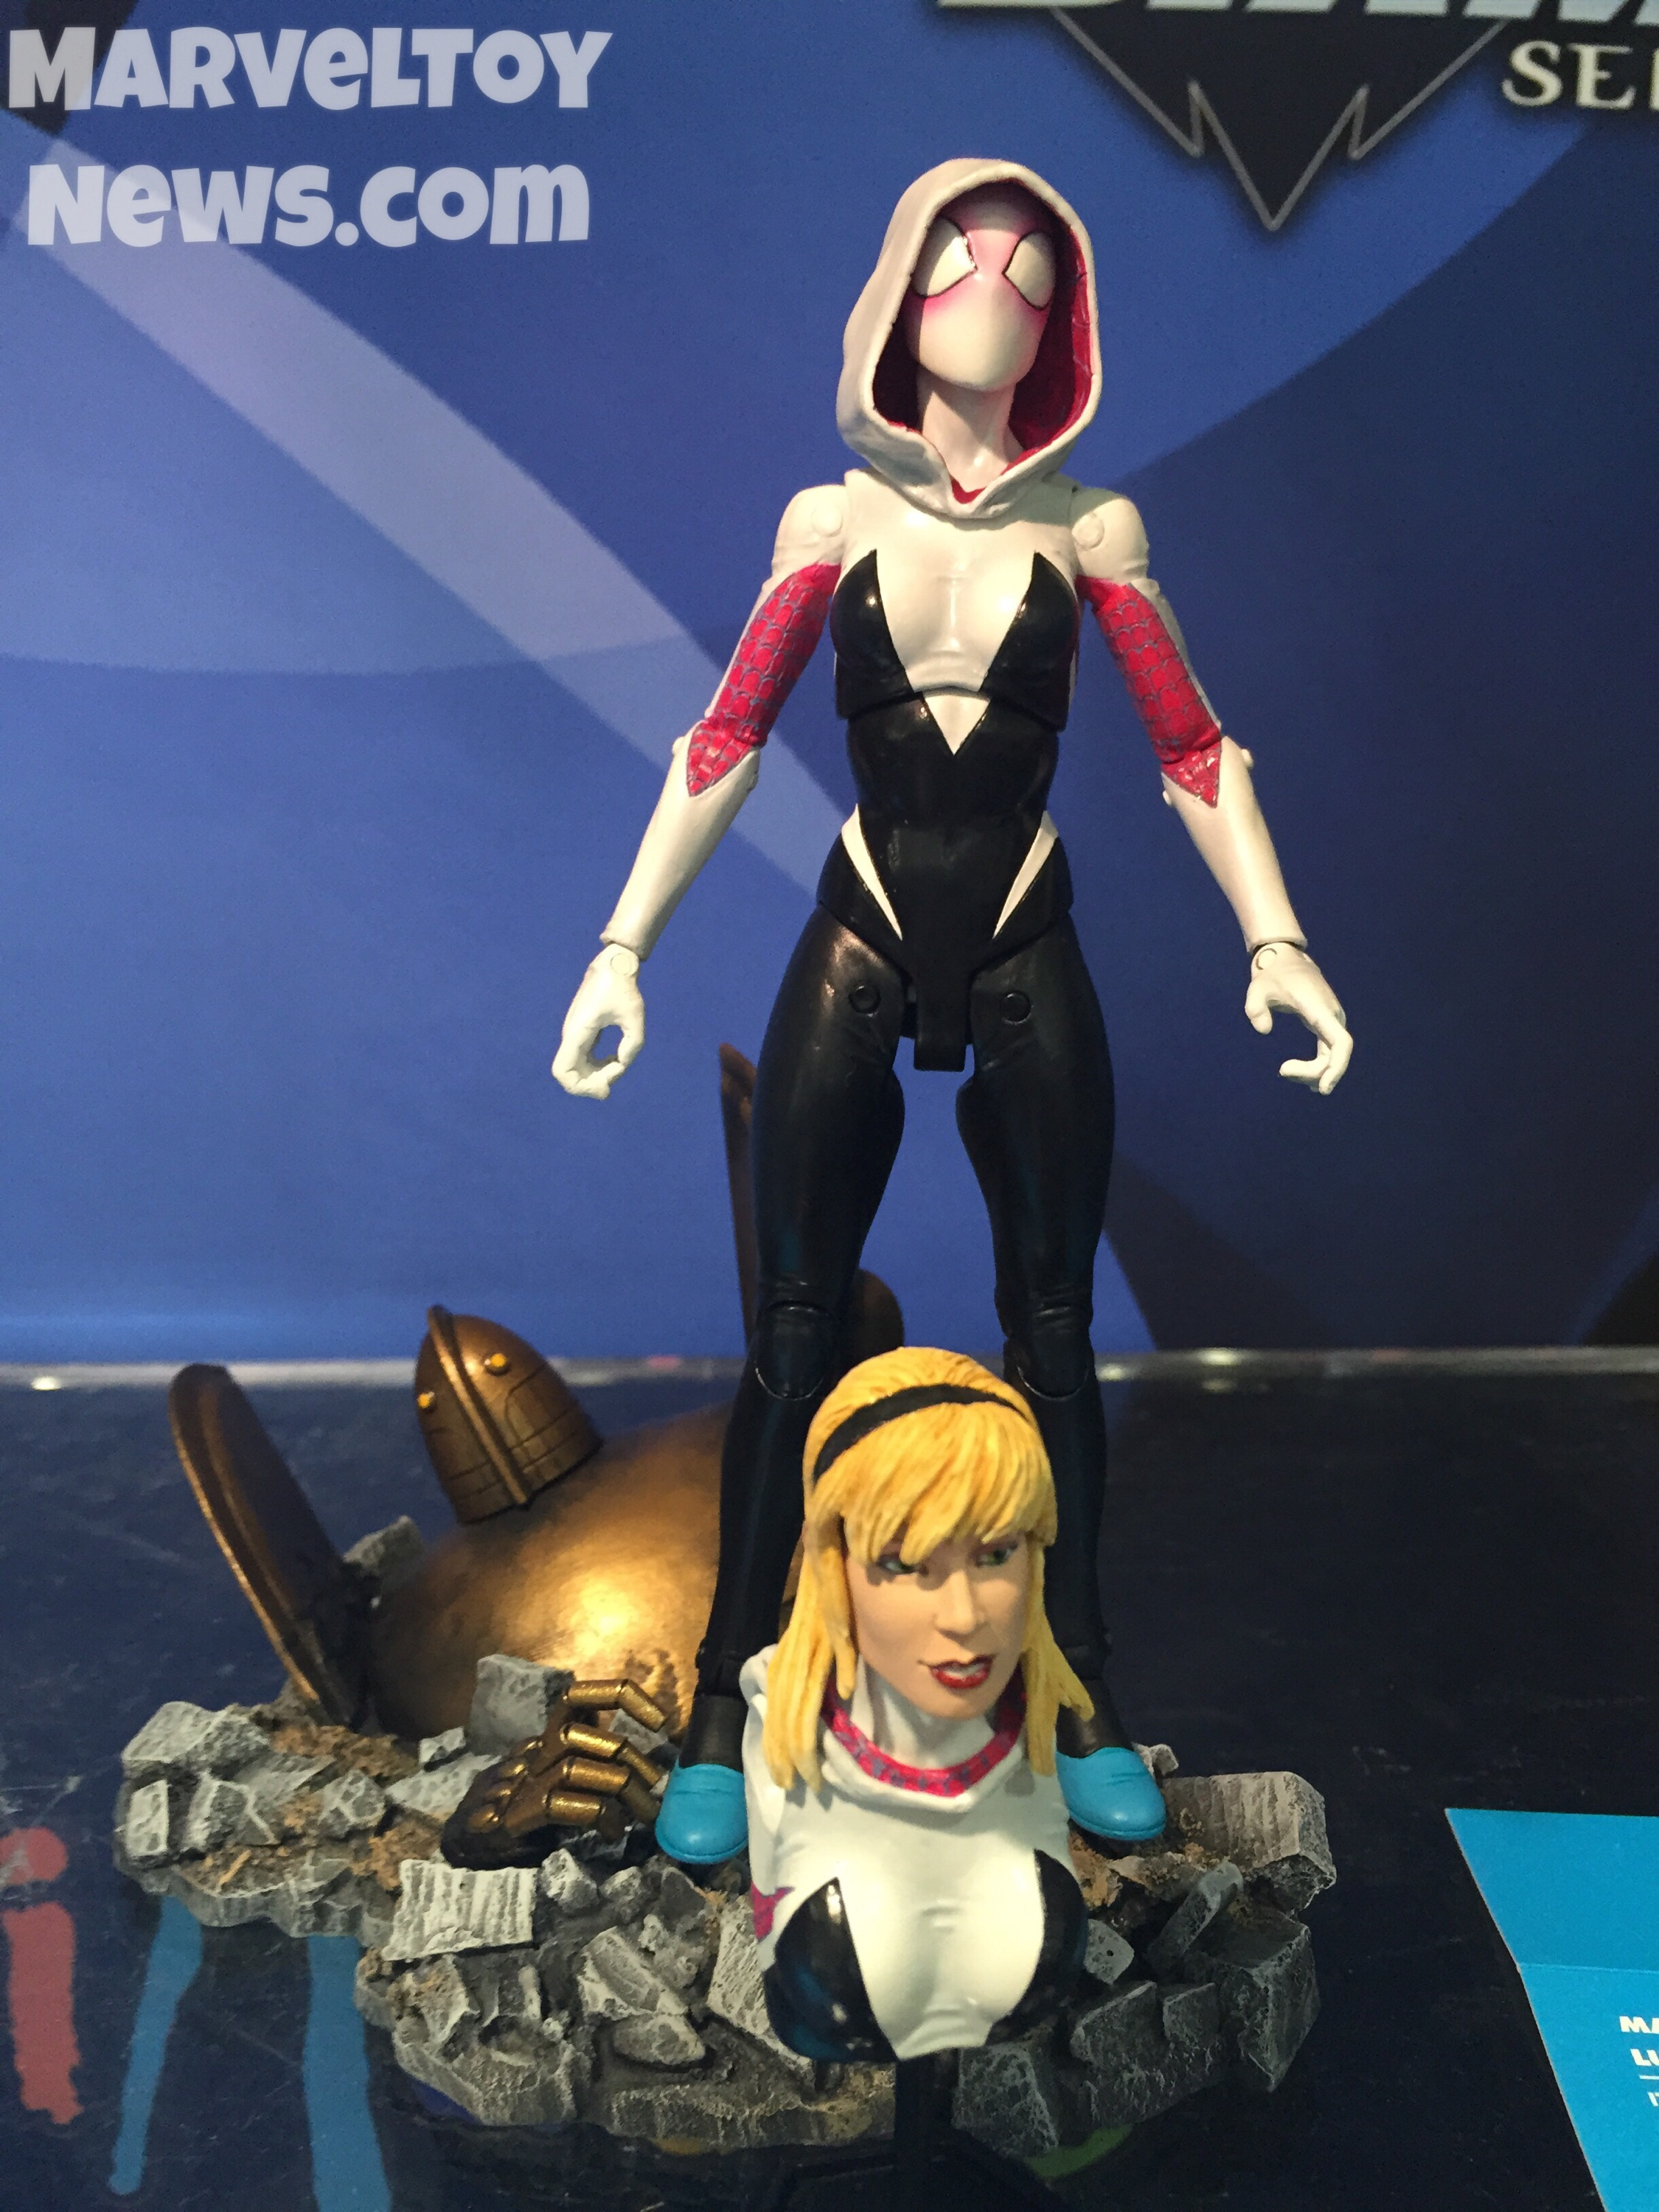 Marvel Diamond Select Spider-Gwen Action Figure